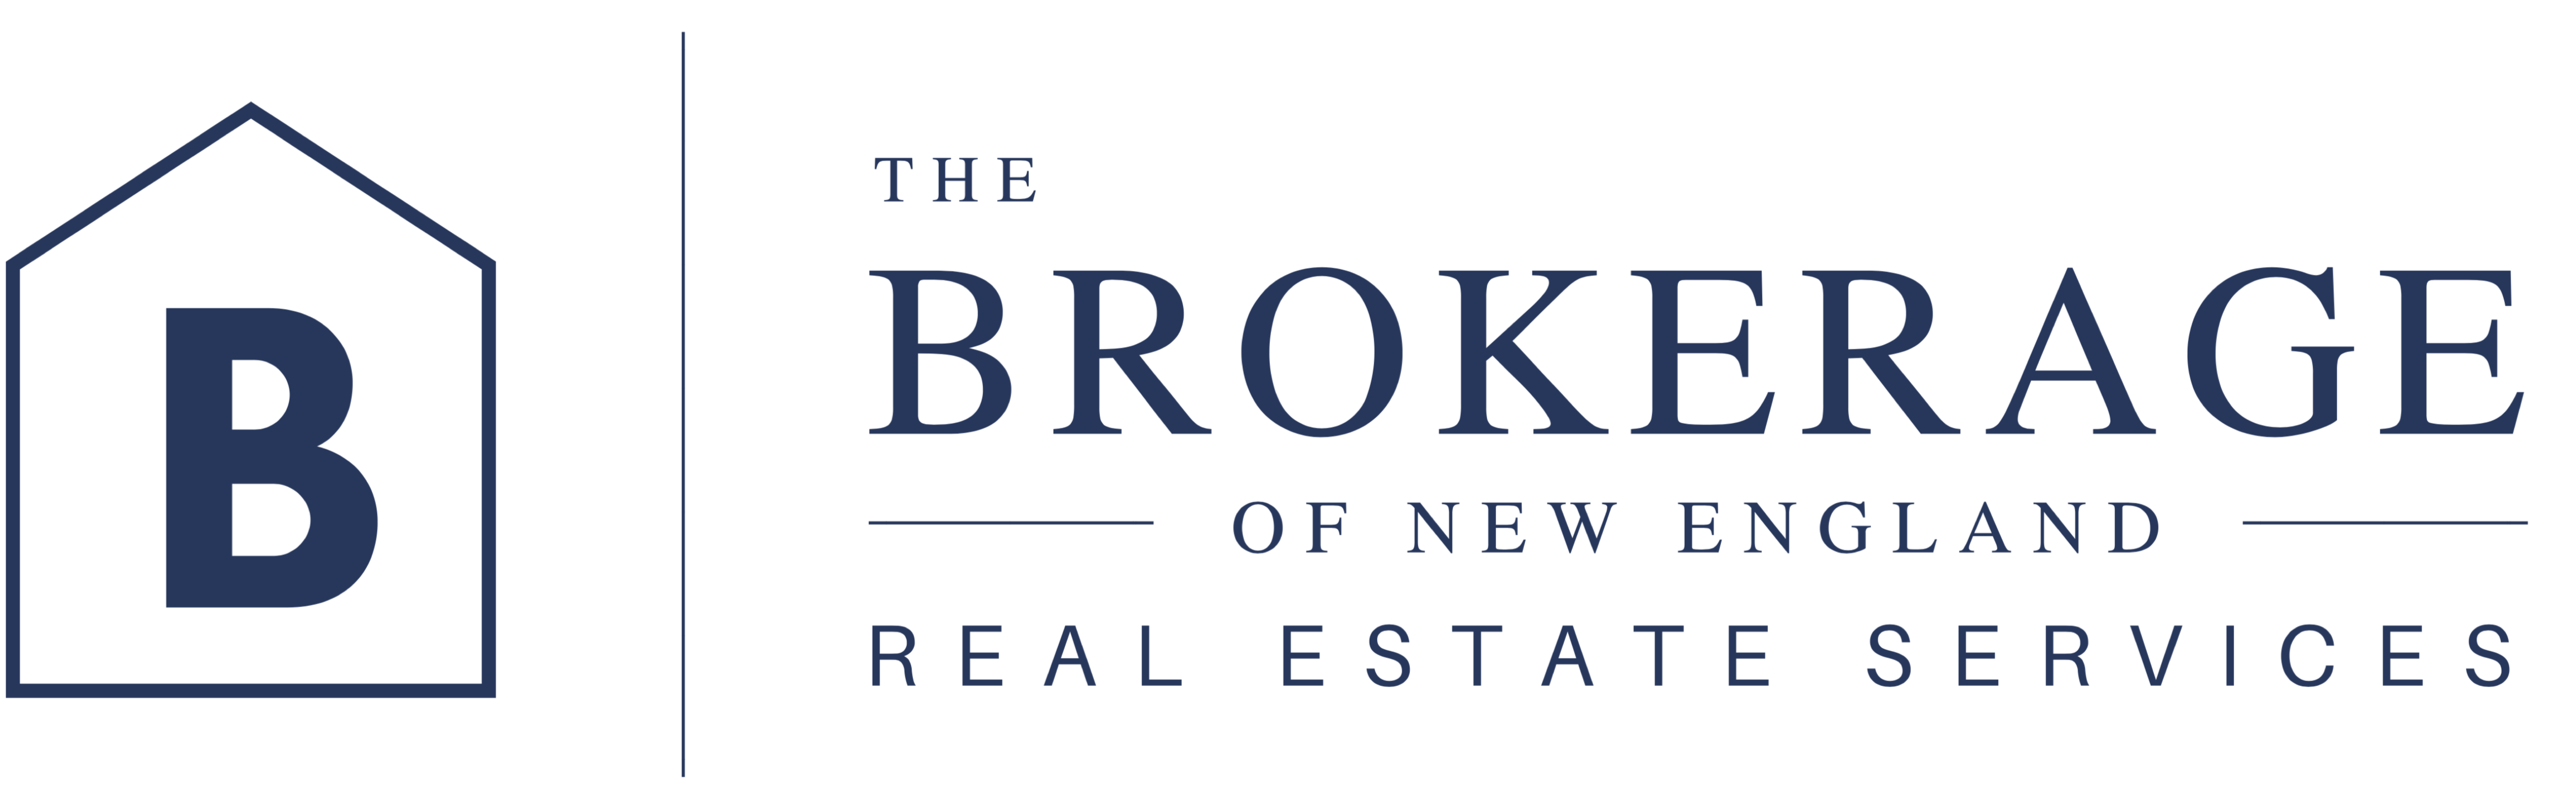 The Brokerage of New England